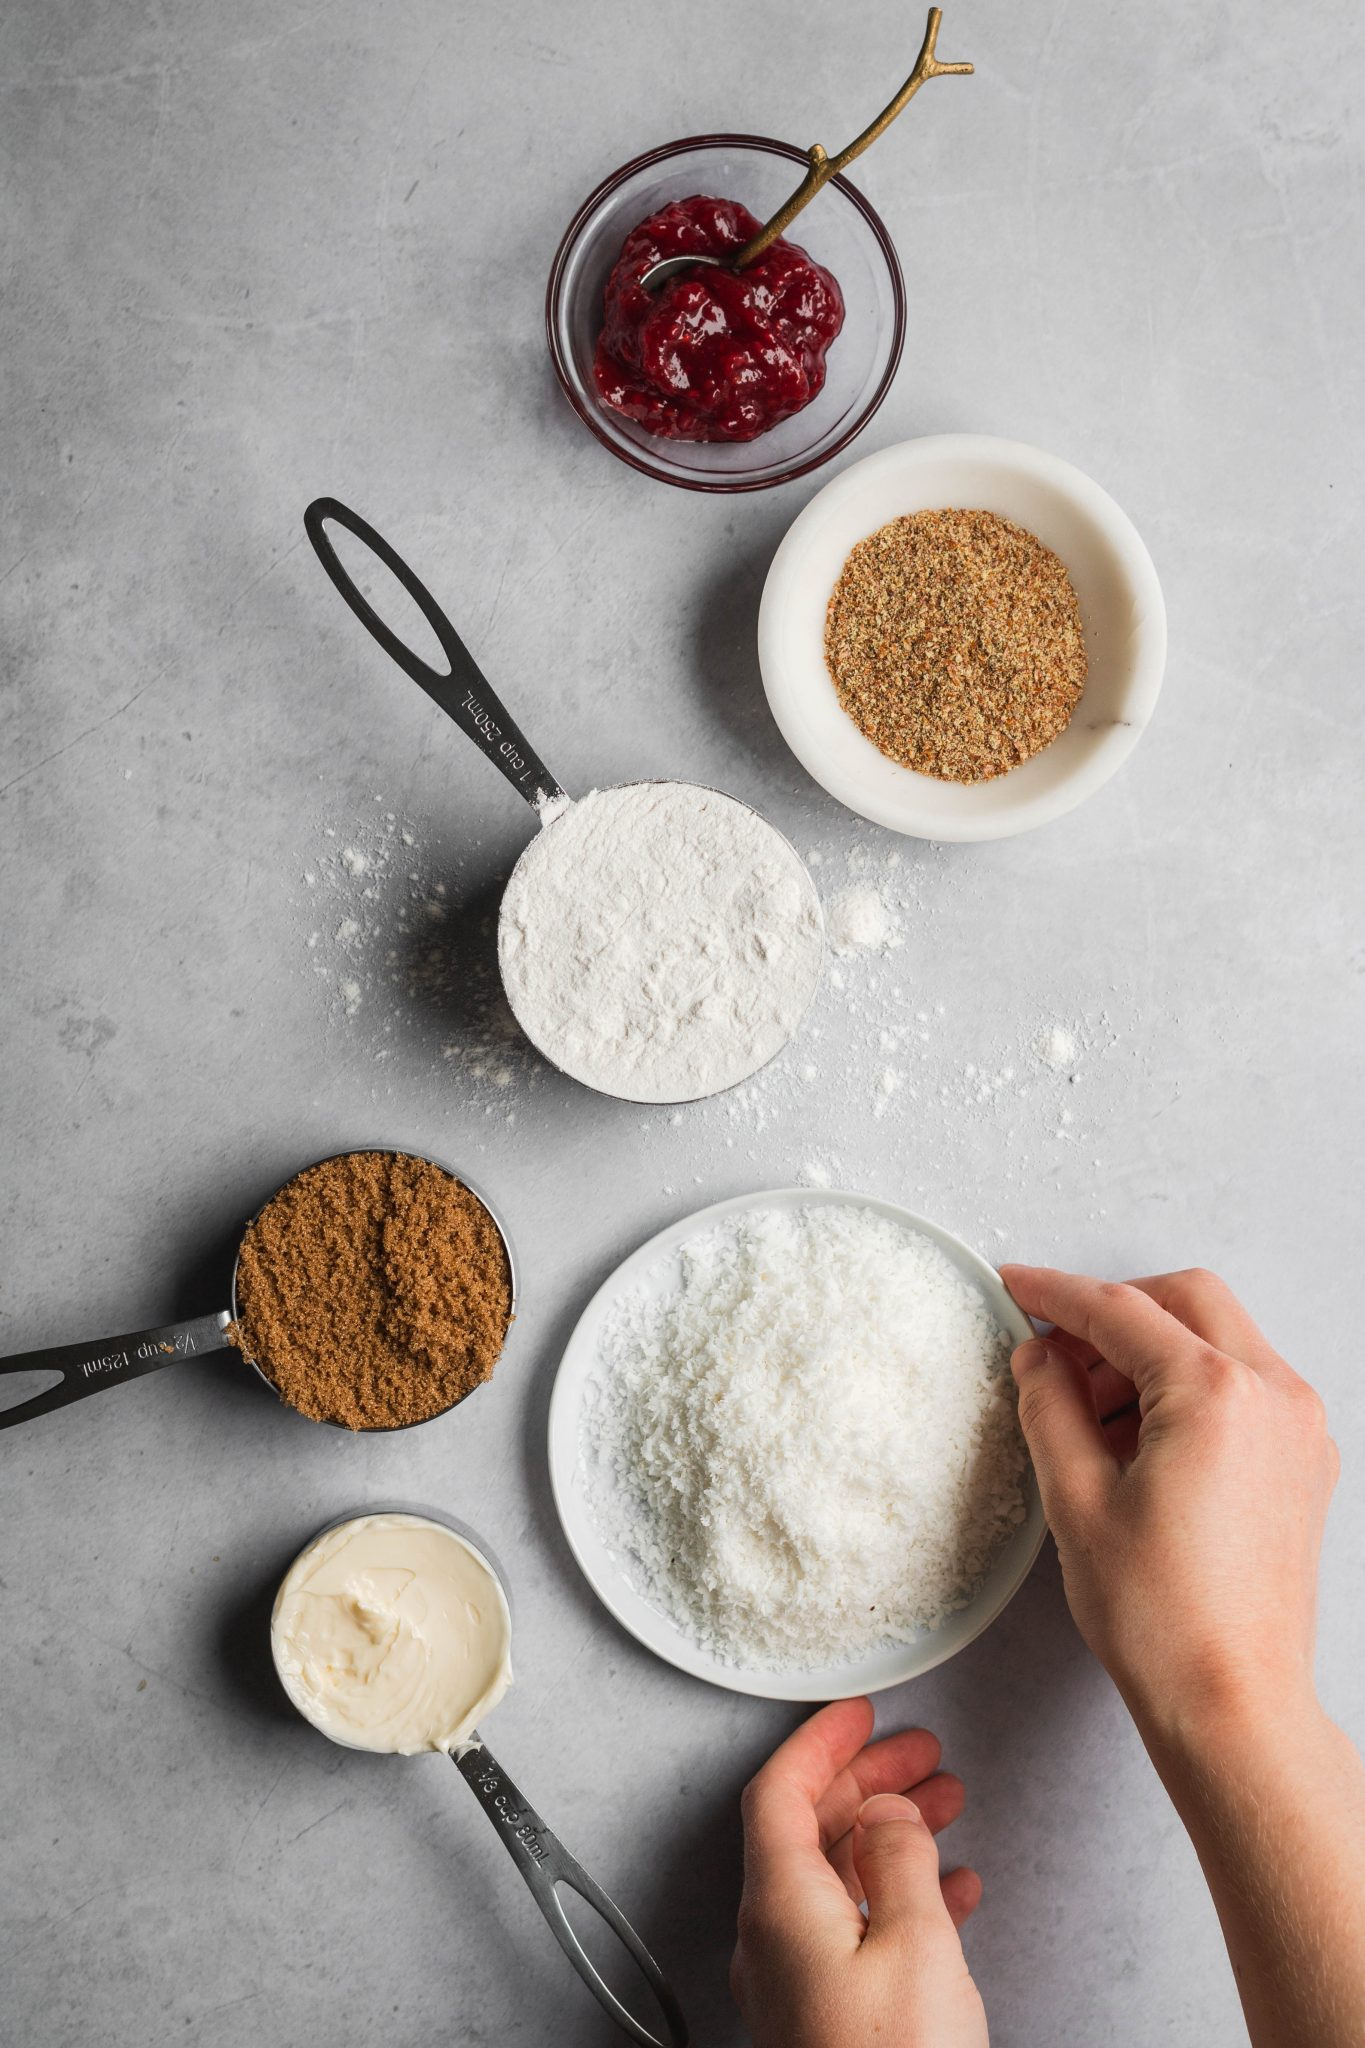 flour, coconut, sugar, butter, flax seeds and jam in bowls